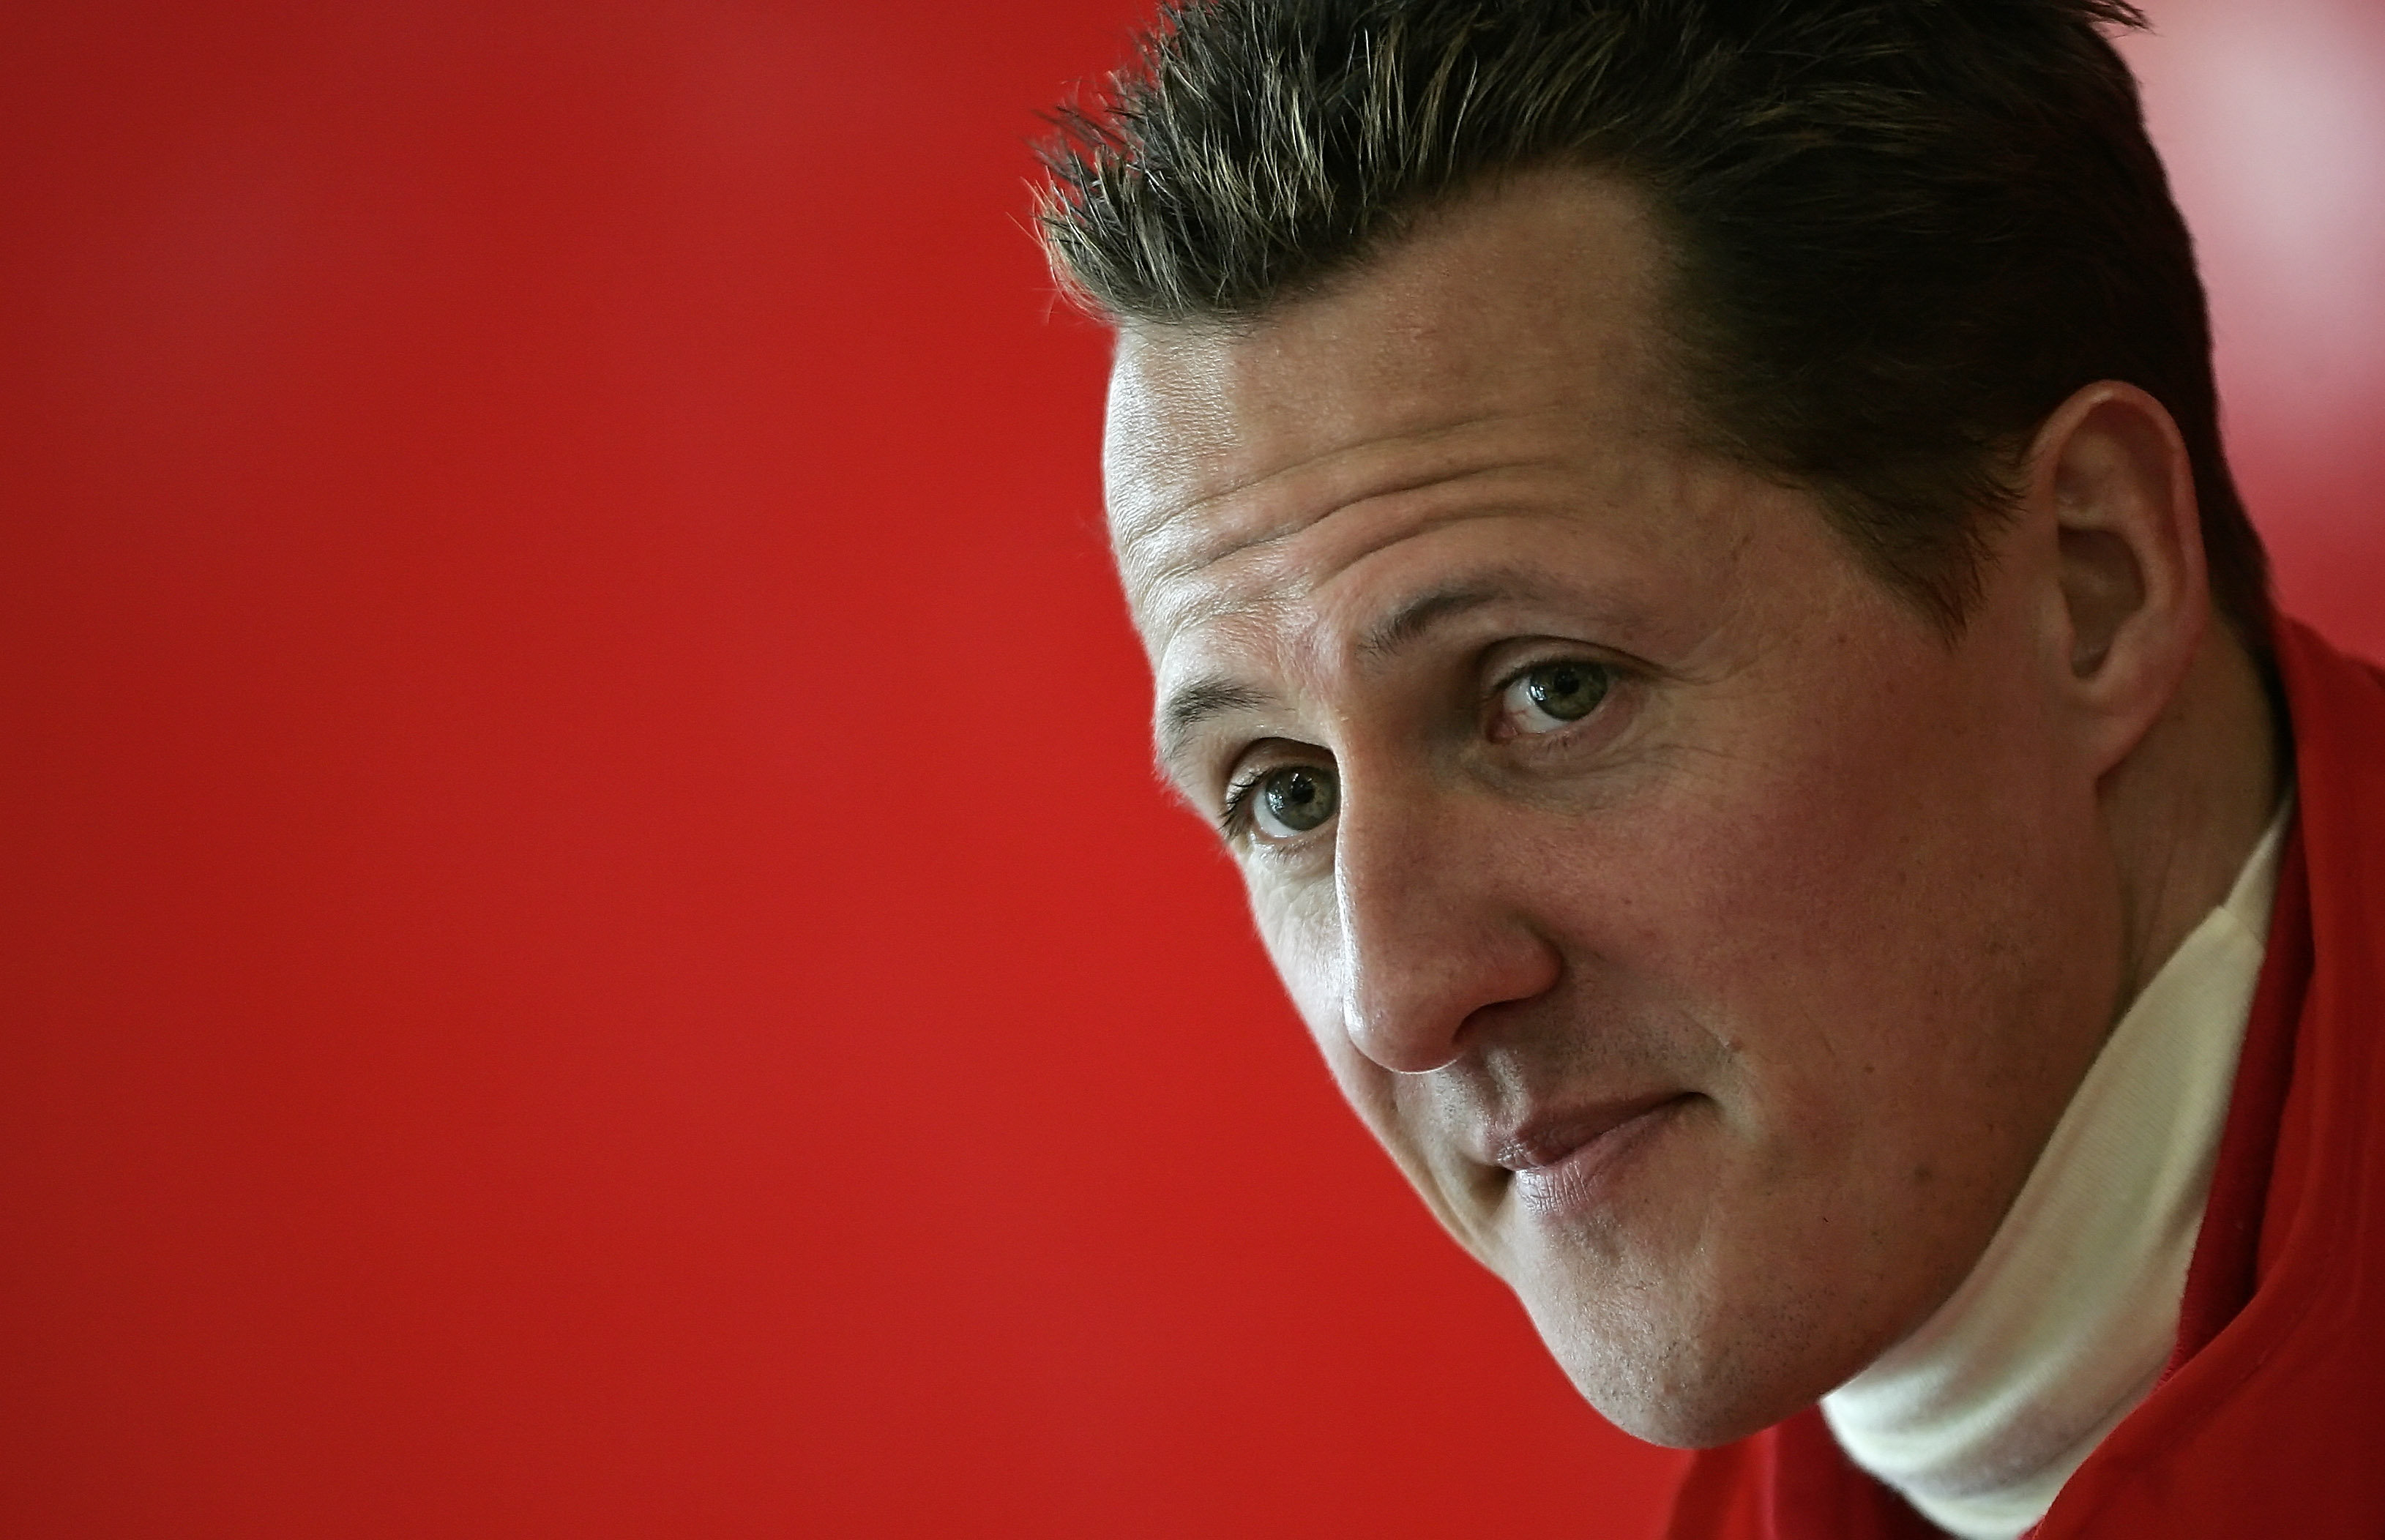 Michael Schumacher in Critical Condition during the Removal of Coma